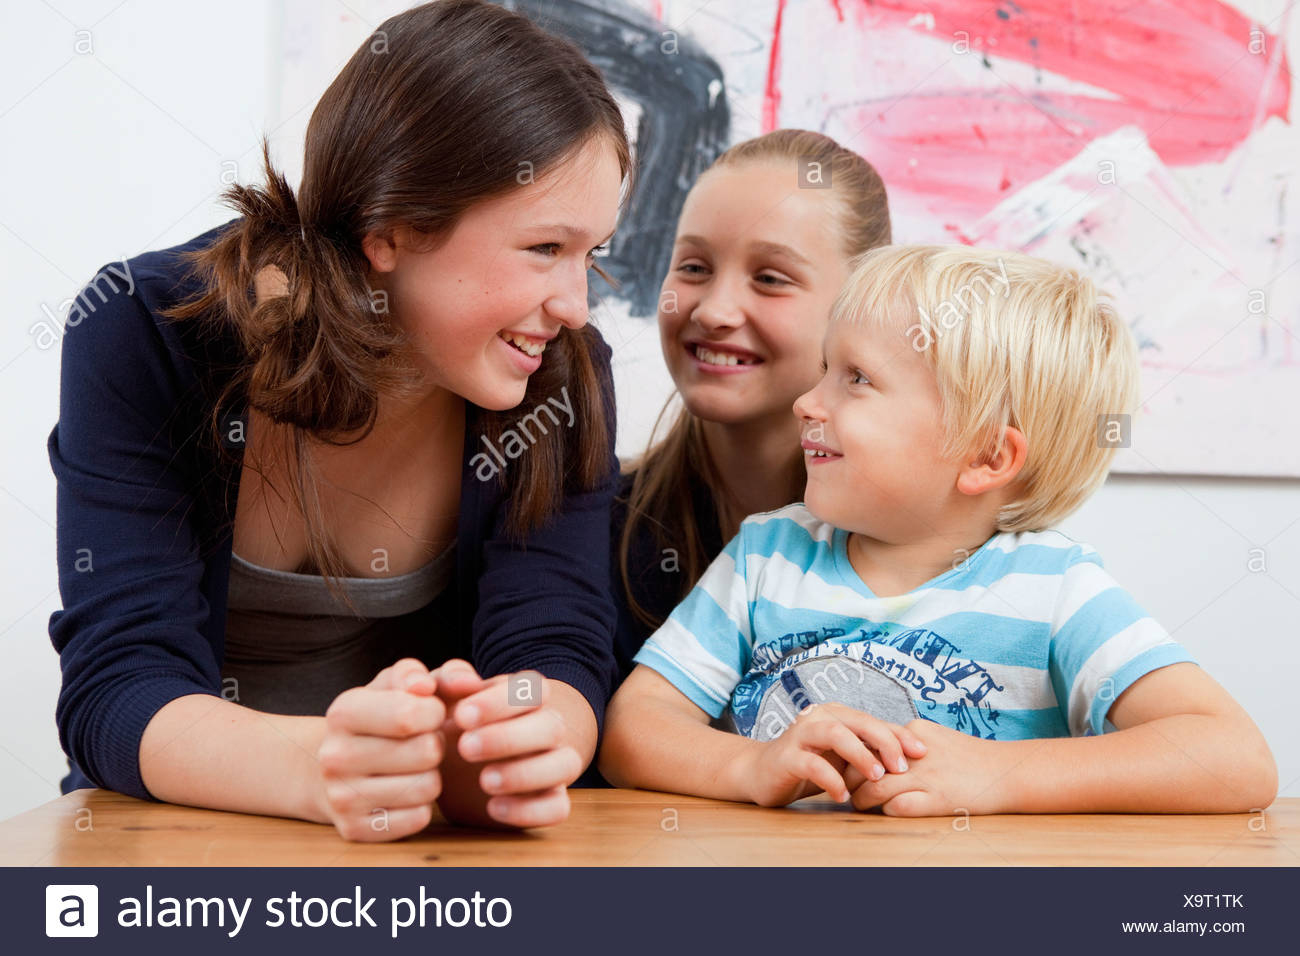 Brother and sisters at table - Stock Image